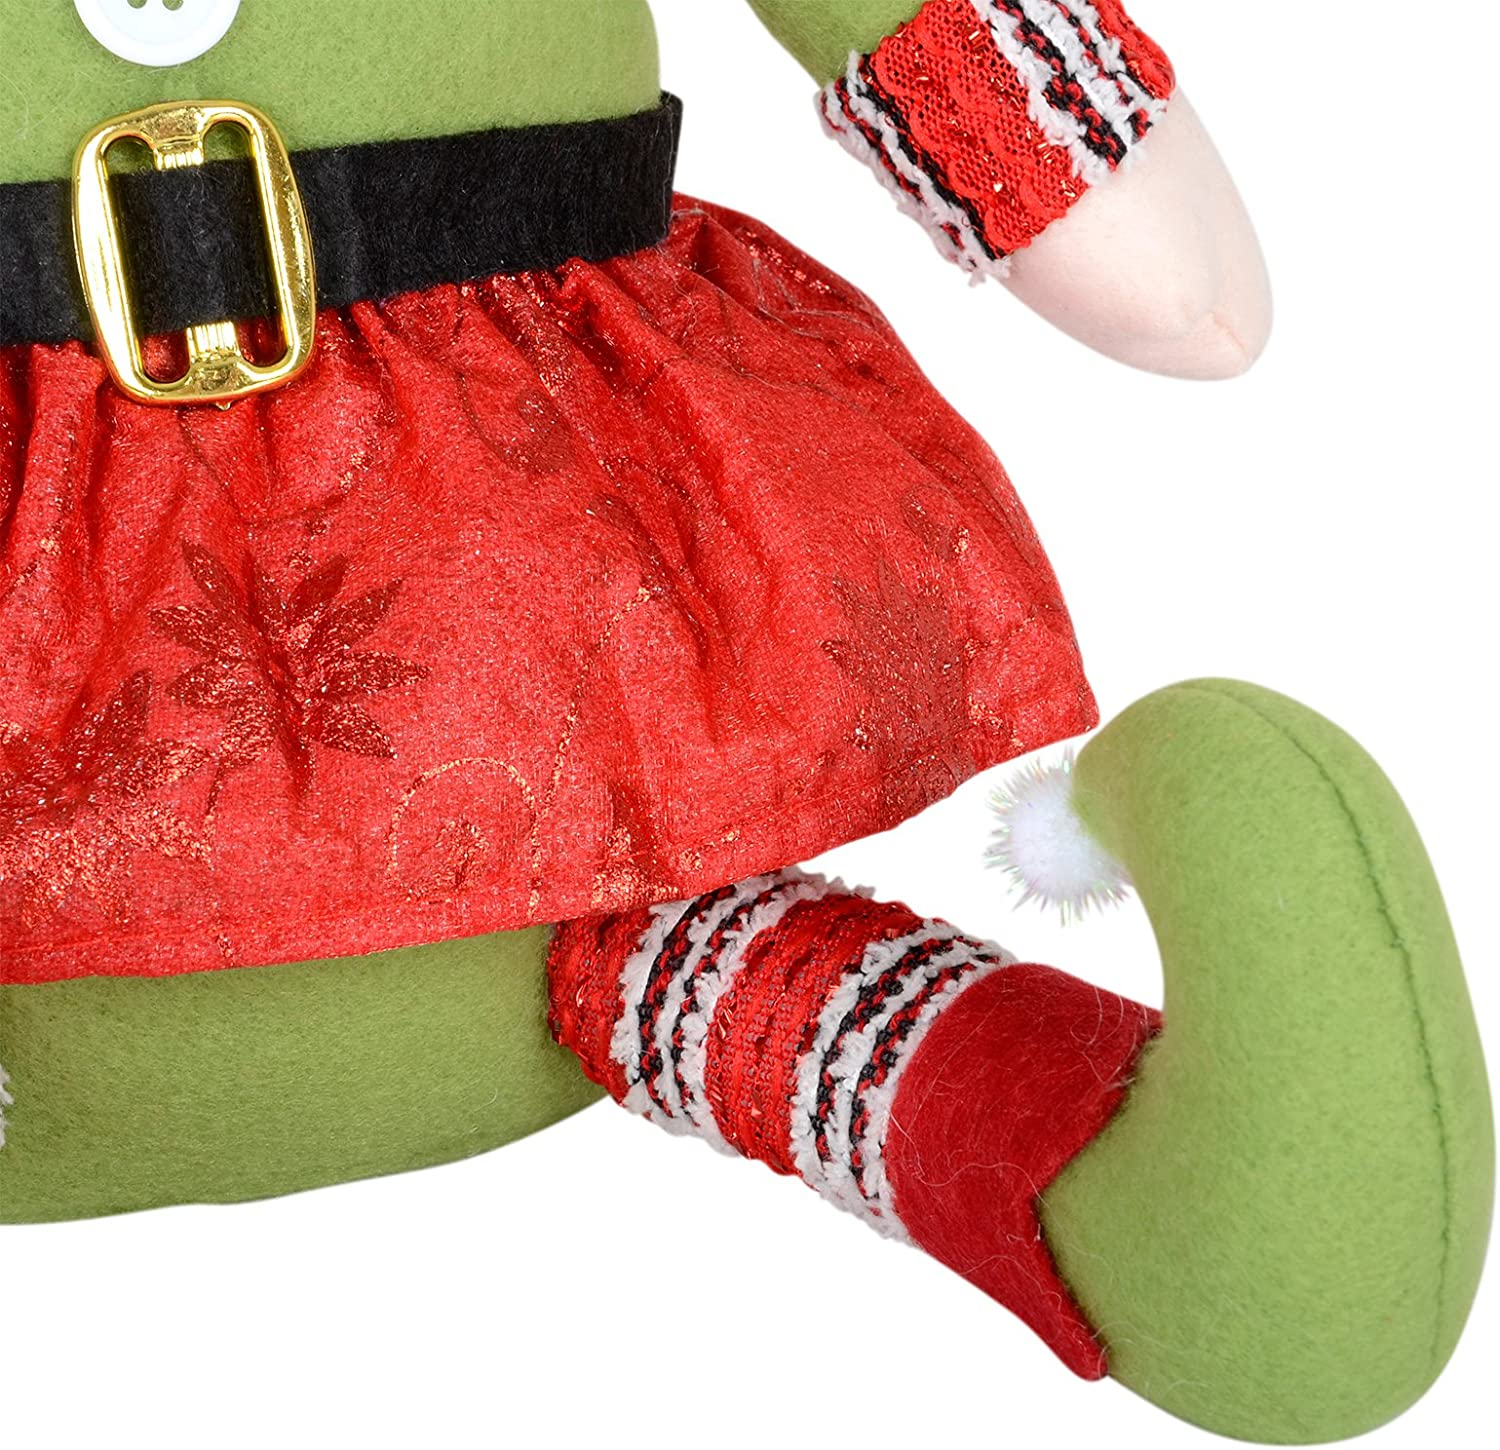 SPARKLES 28cm Santas Little Helper Elf Girl Sitting Figure Christmas Xmas Room Decoration Red Green Festive Ornament Fabric Design Weighted Base For Indoor Use